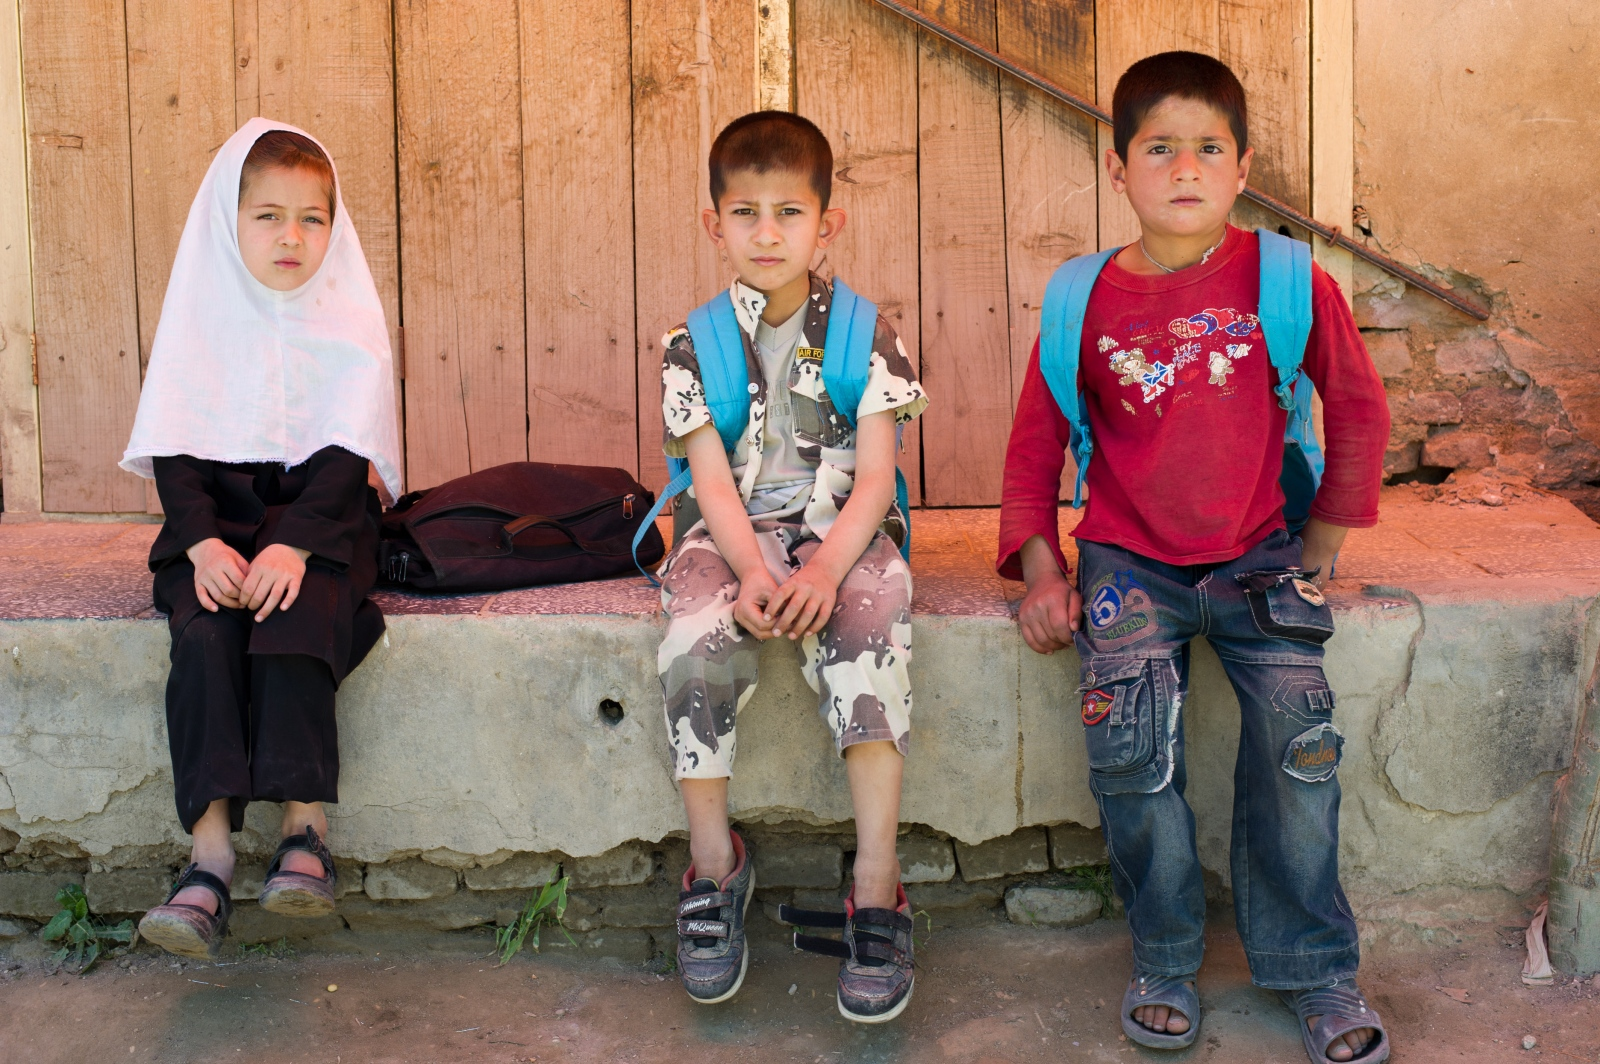 Afghan children wait for school in Istalif, Afghanistan.